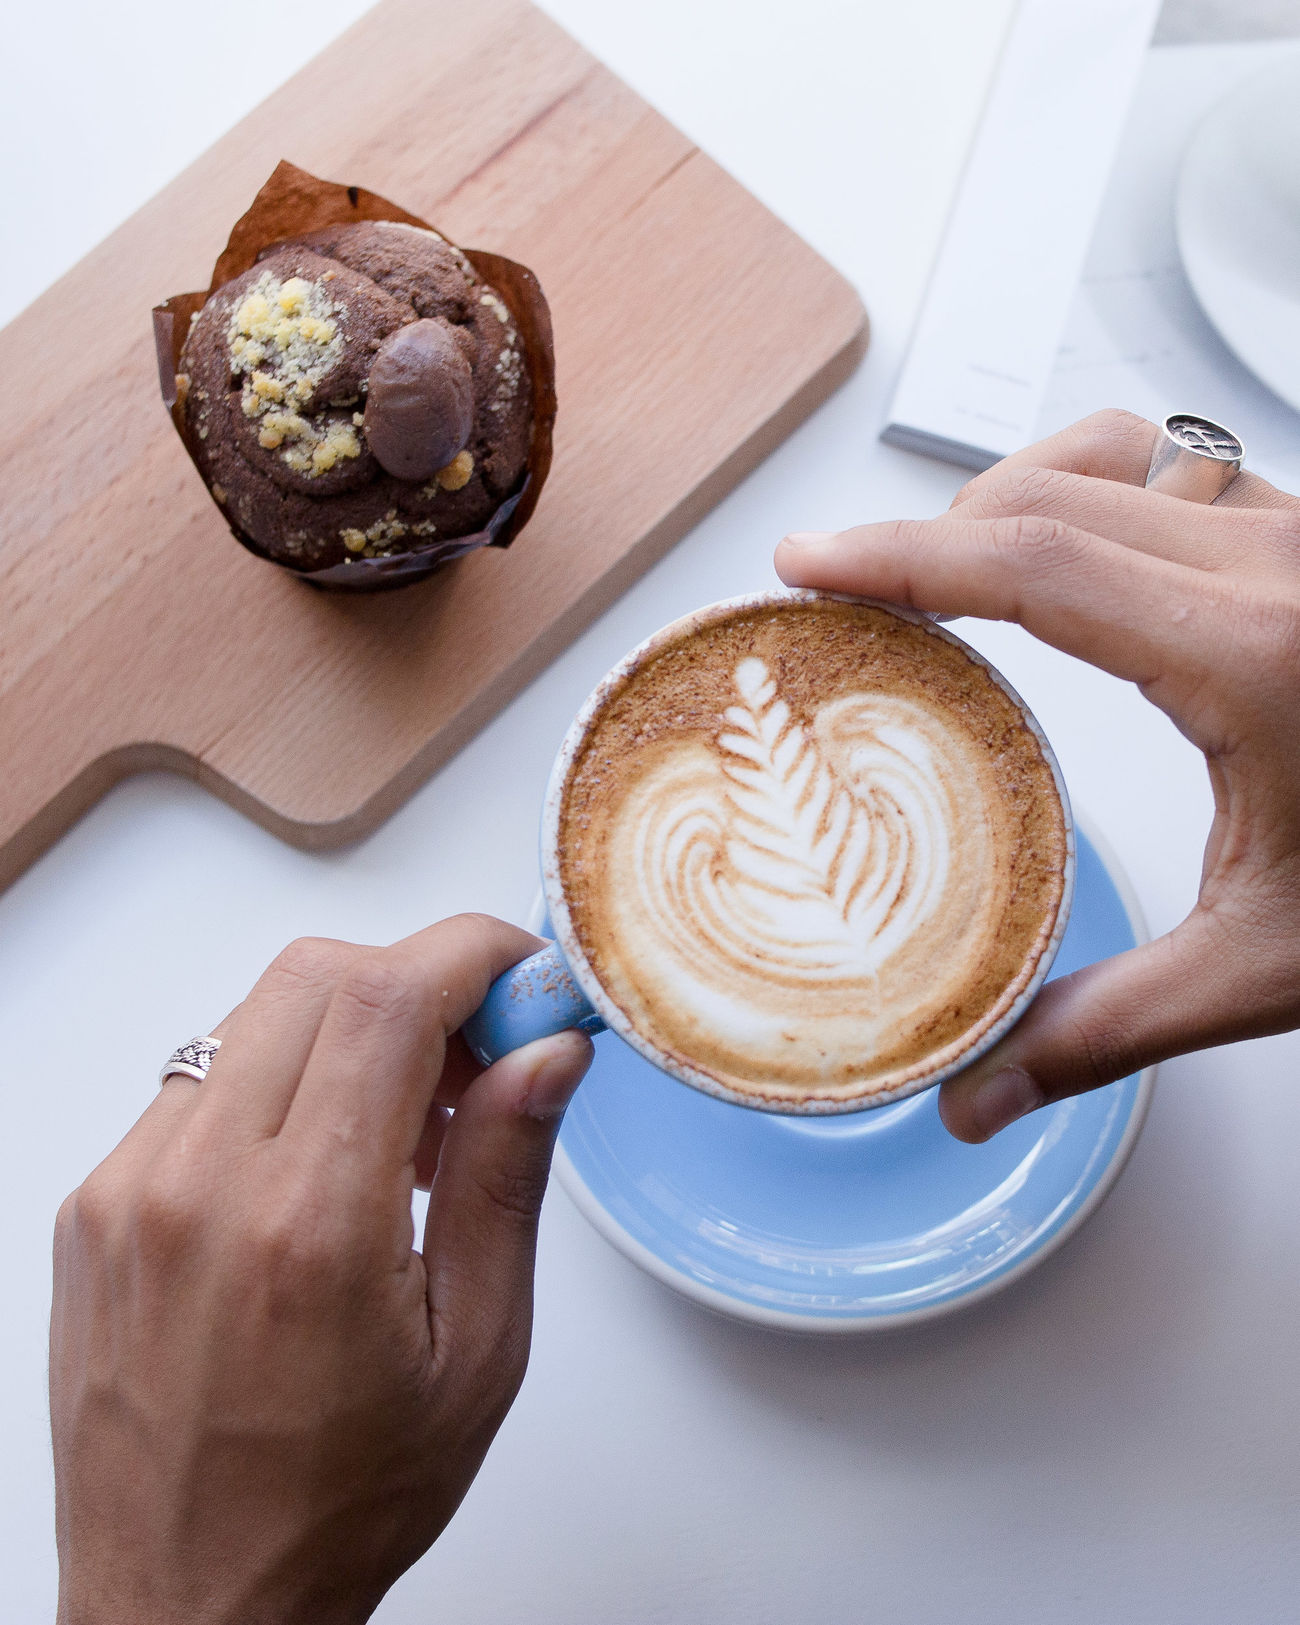 Cappuccino Close-up Coffee - Drink Coffee Cup Day Drink Food And Drink Freshness Froth Art Frothy Drink Holding Human Body Part Human Hand Indoors  Latte Latte Muffin One Person Ready-to-eat Real People Refreshment Saucer Table White Background Women